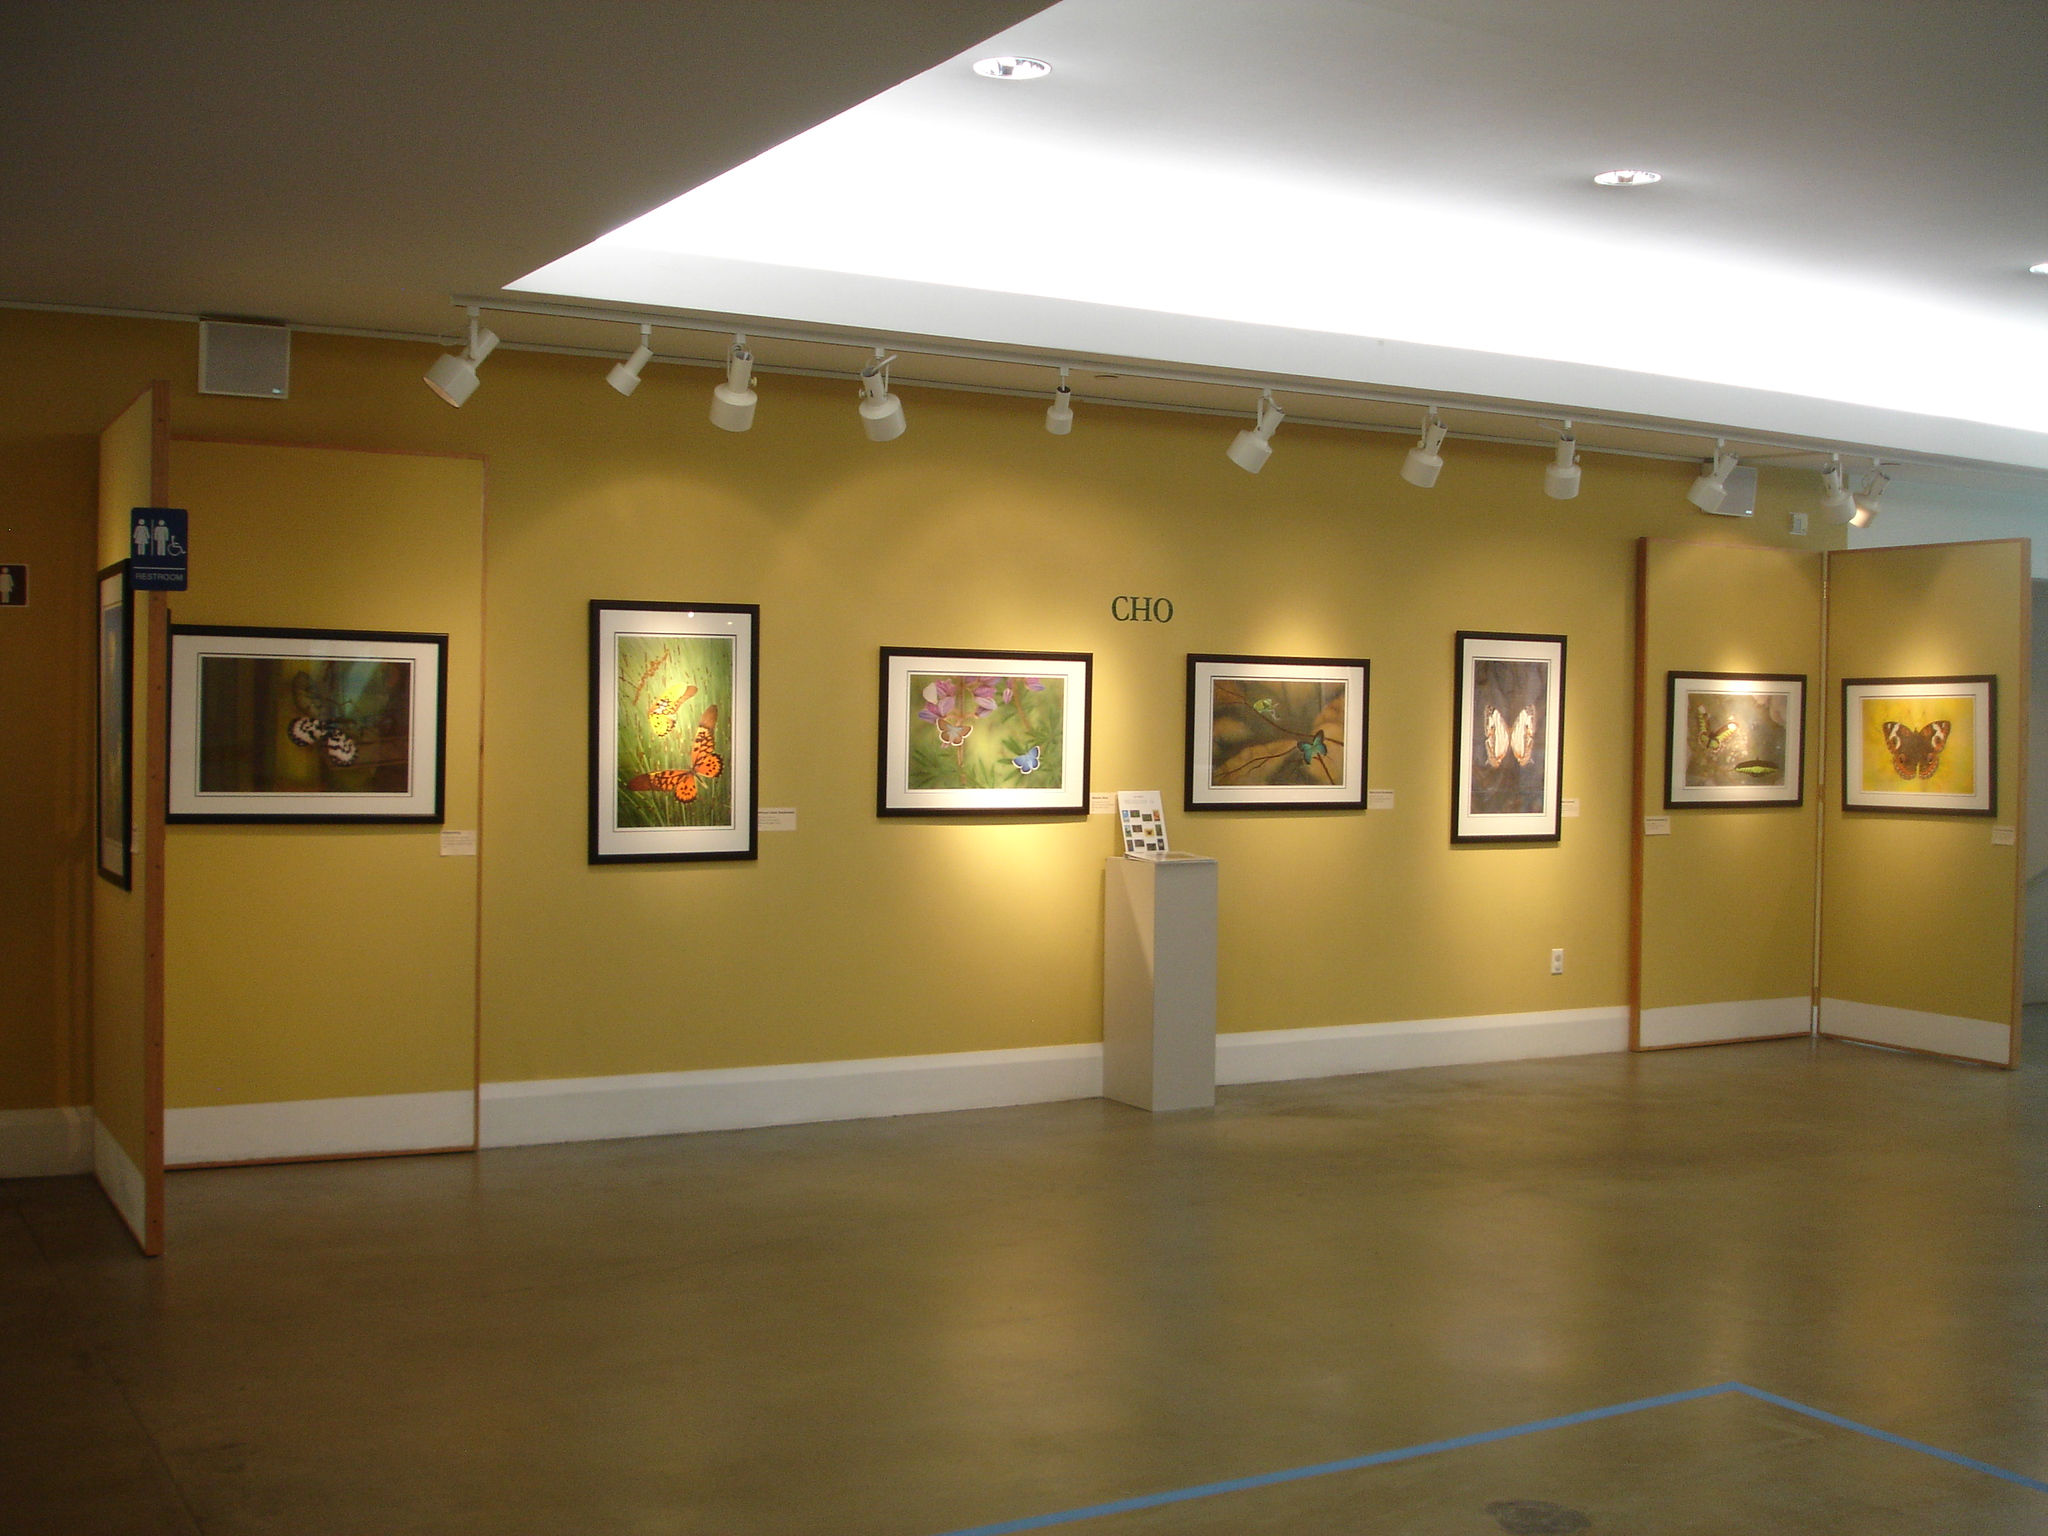 Gallery and Art Show - EXHIBITS